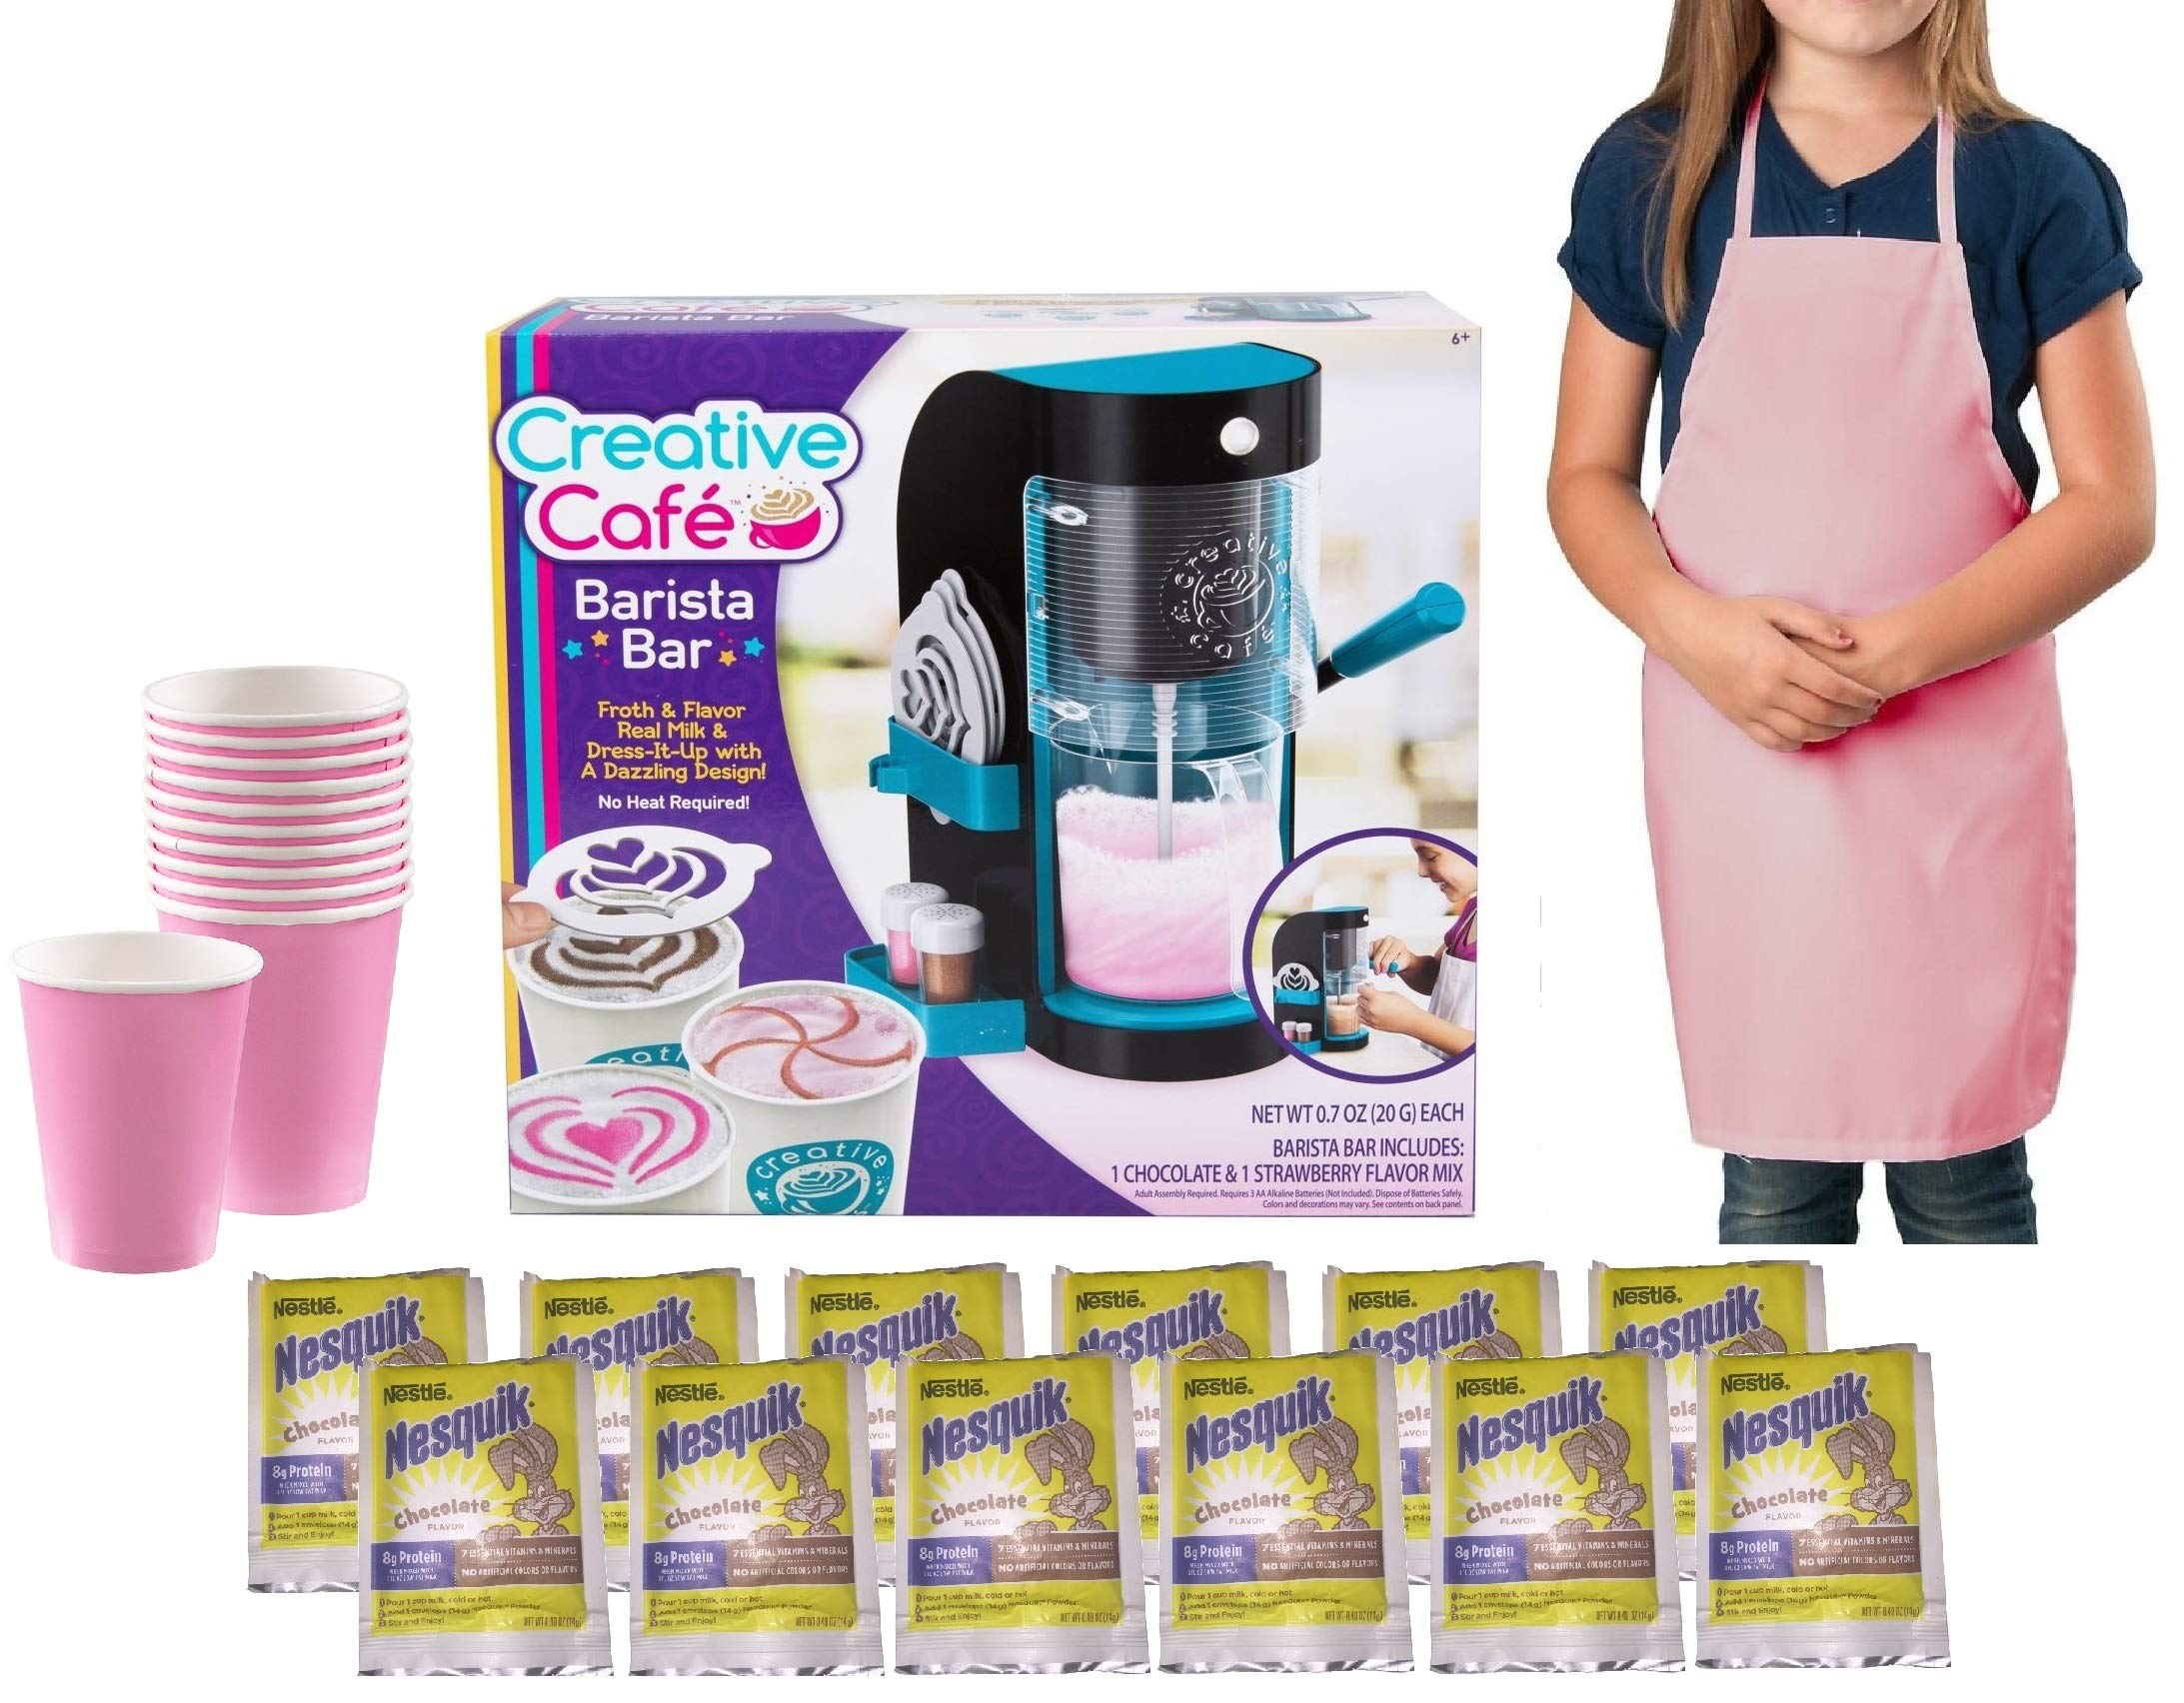 My Favorite Toys Creative Cafe Barista Bar Gift Set - Includes Barista Bar, Pink Apron, 12 Pink Cups and Chocolate Powder Refill Packets